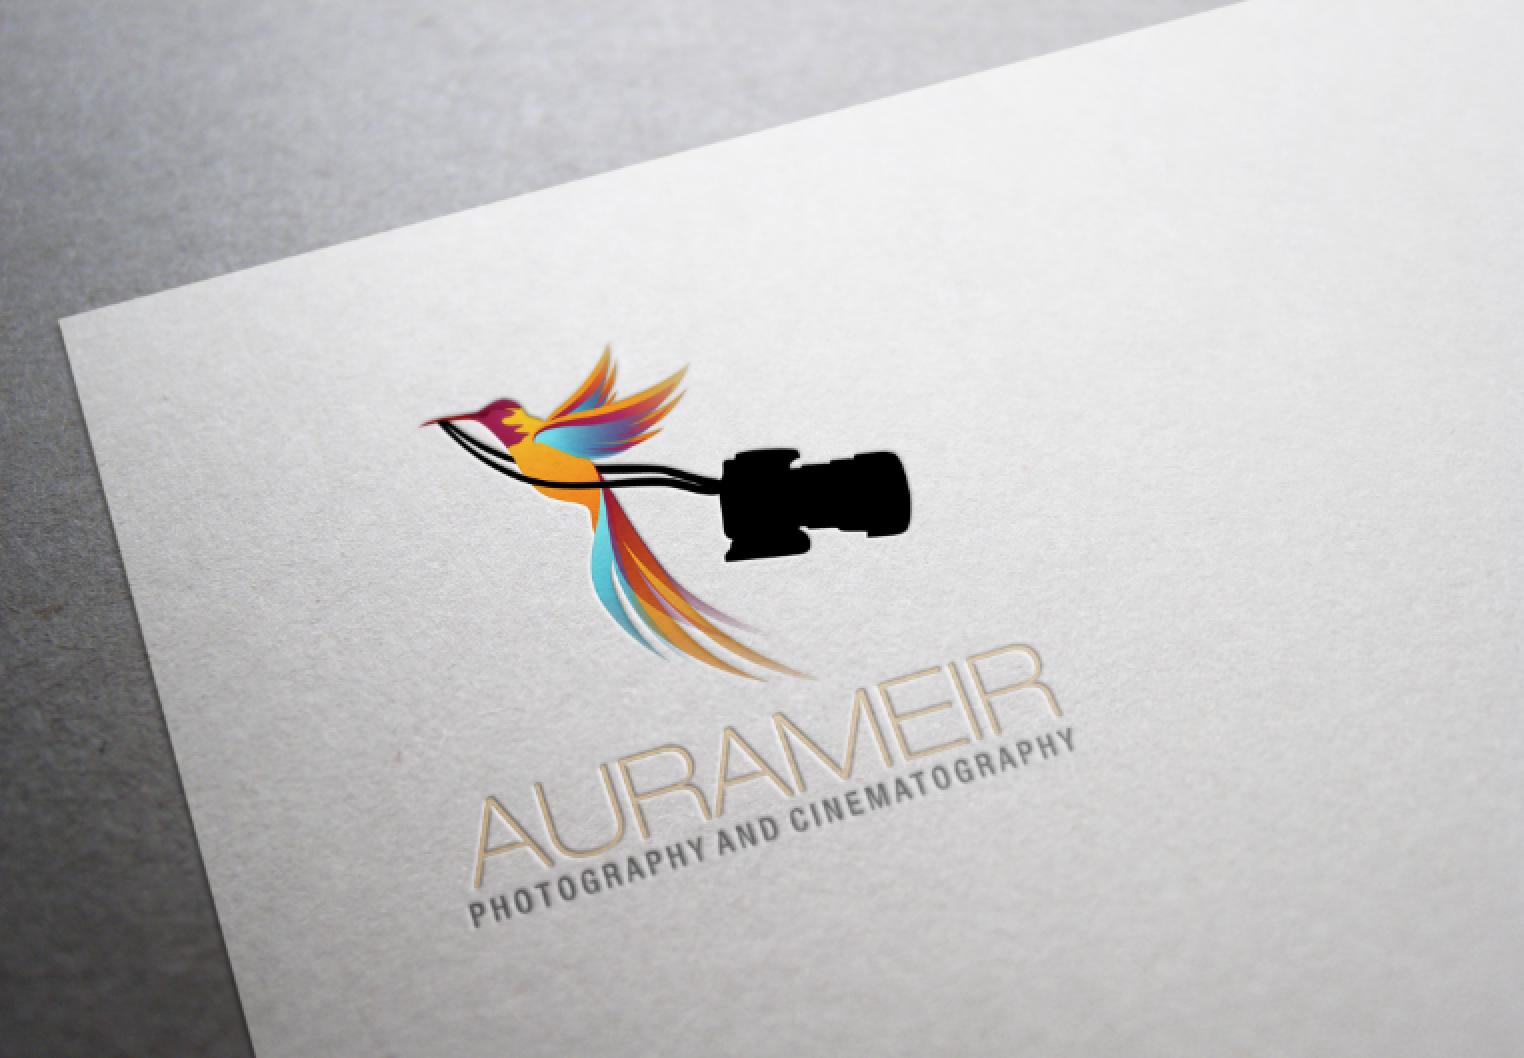 17 photography business logos images photography